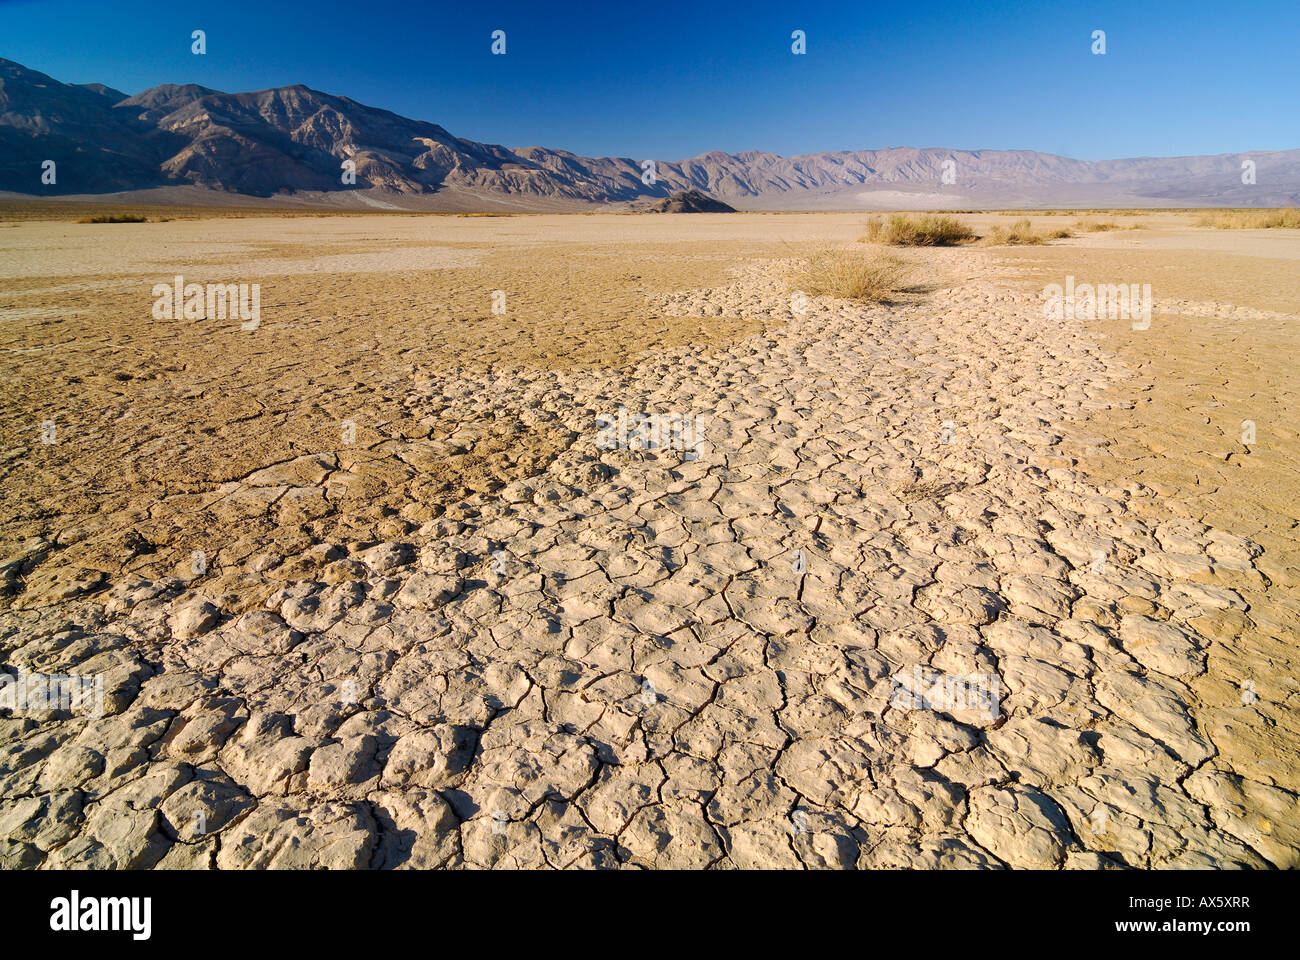 Desiccation cracks, arid loam soil at Stovepipe Wells in ...